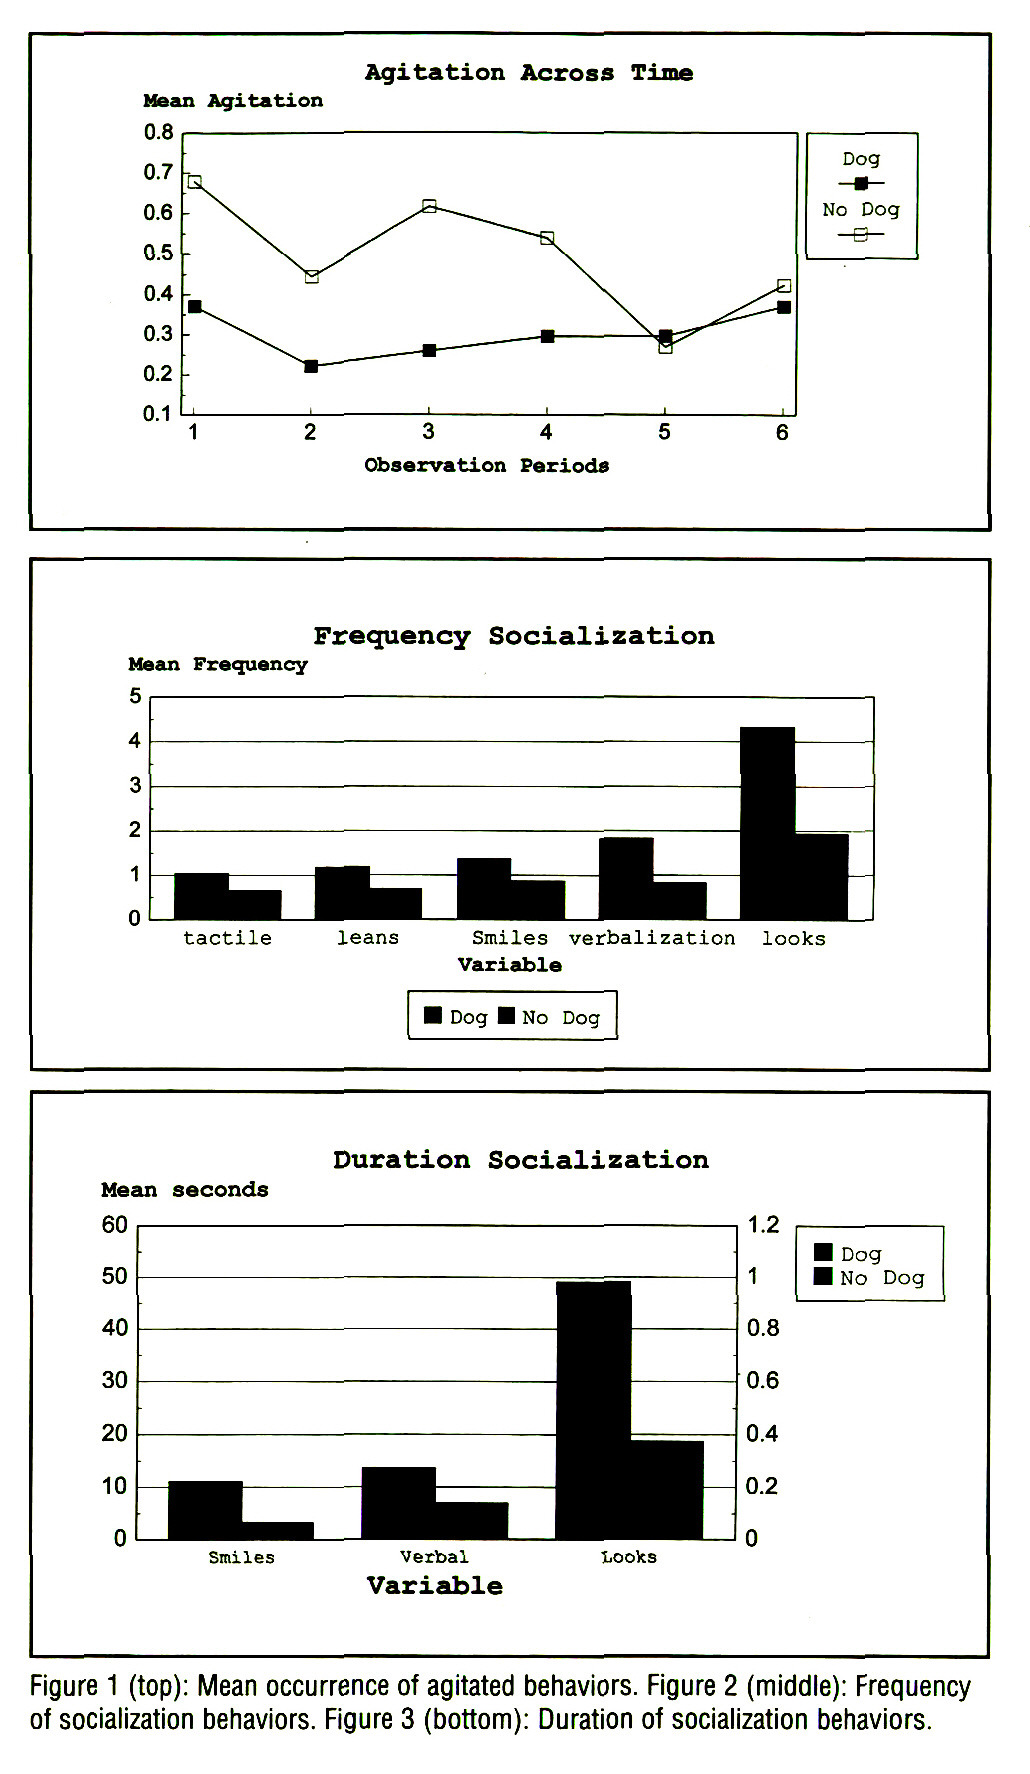 Figure 1 (top): Mean occurrence of agitated behaviors. Figure 2 (middle): Frequency of socialization behaviors. Figure 3 (bottom): Duration of socialization behaviors.